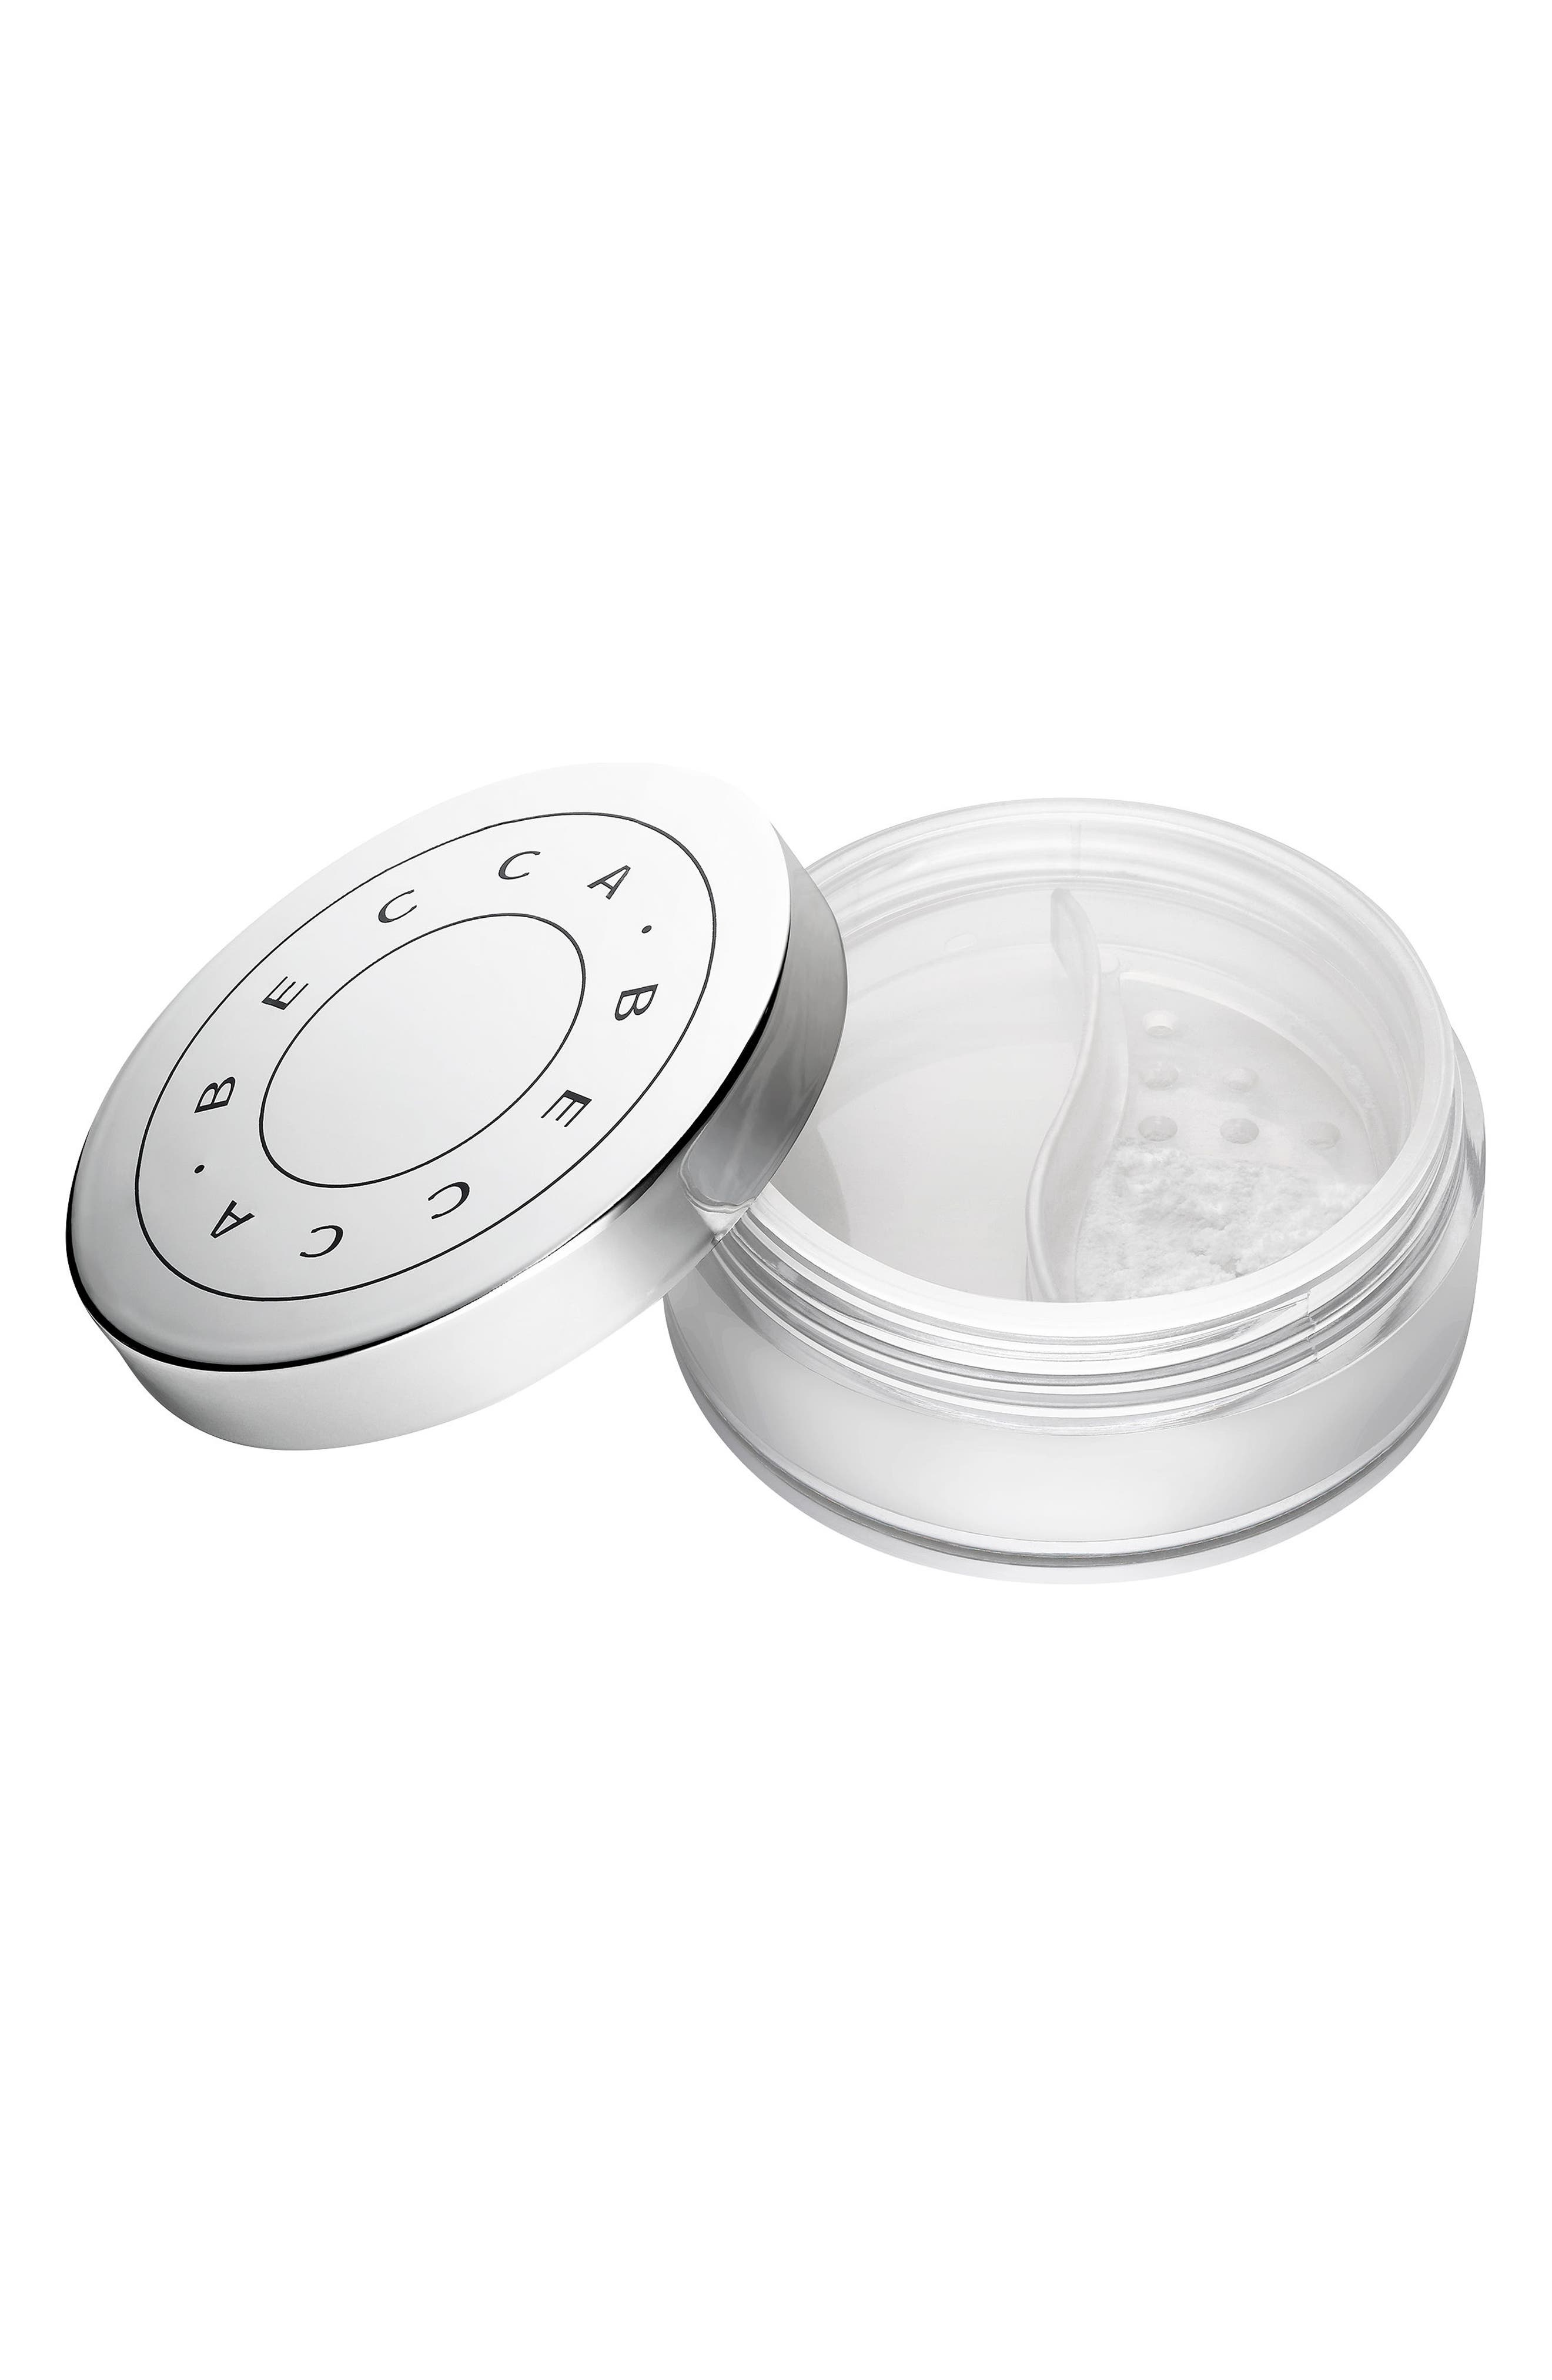 BECCA Undereye Setting Powder,                             Main thumbnail 1, color,                             NO COLOR